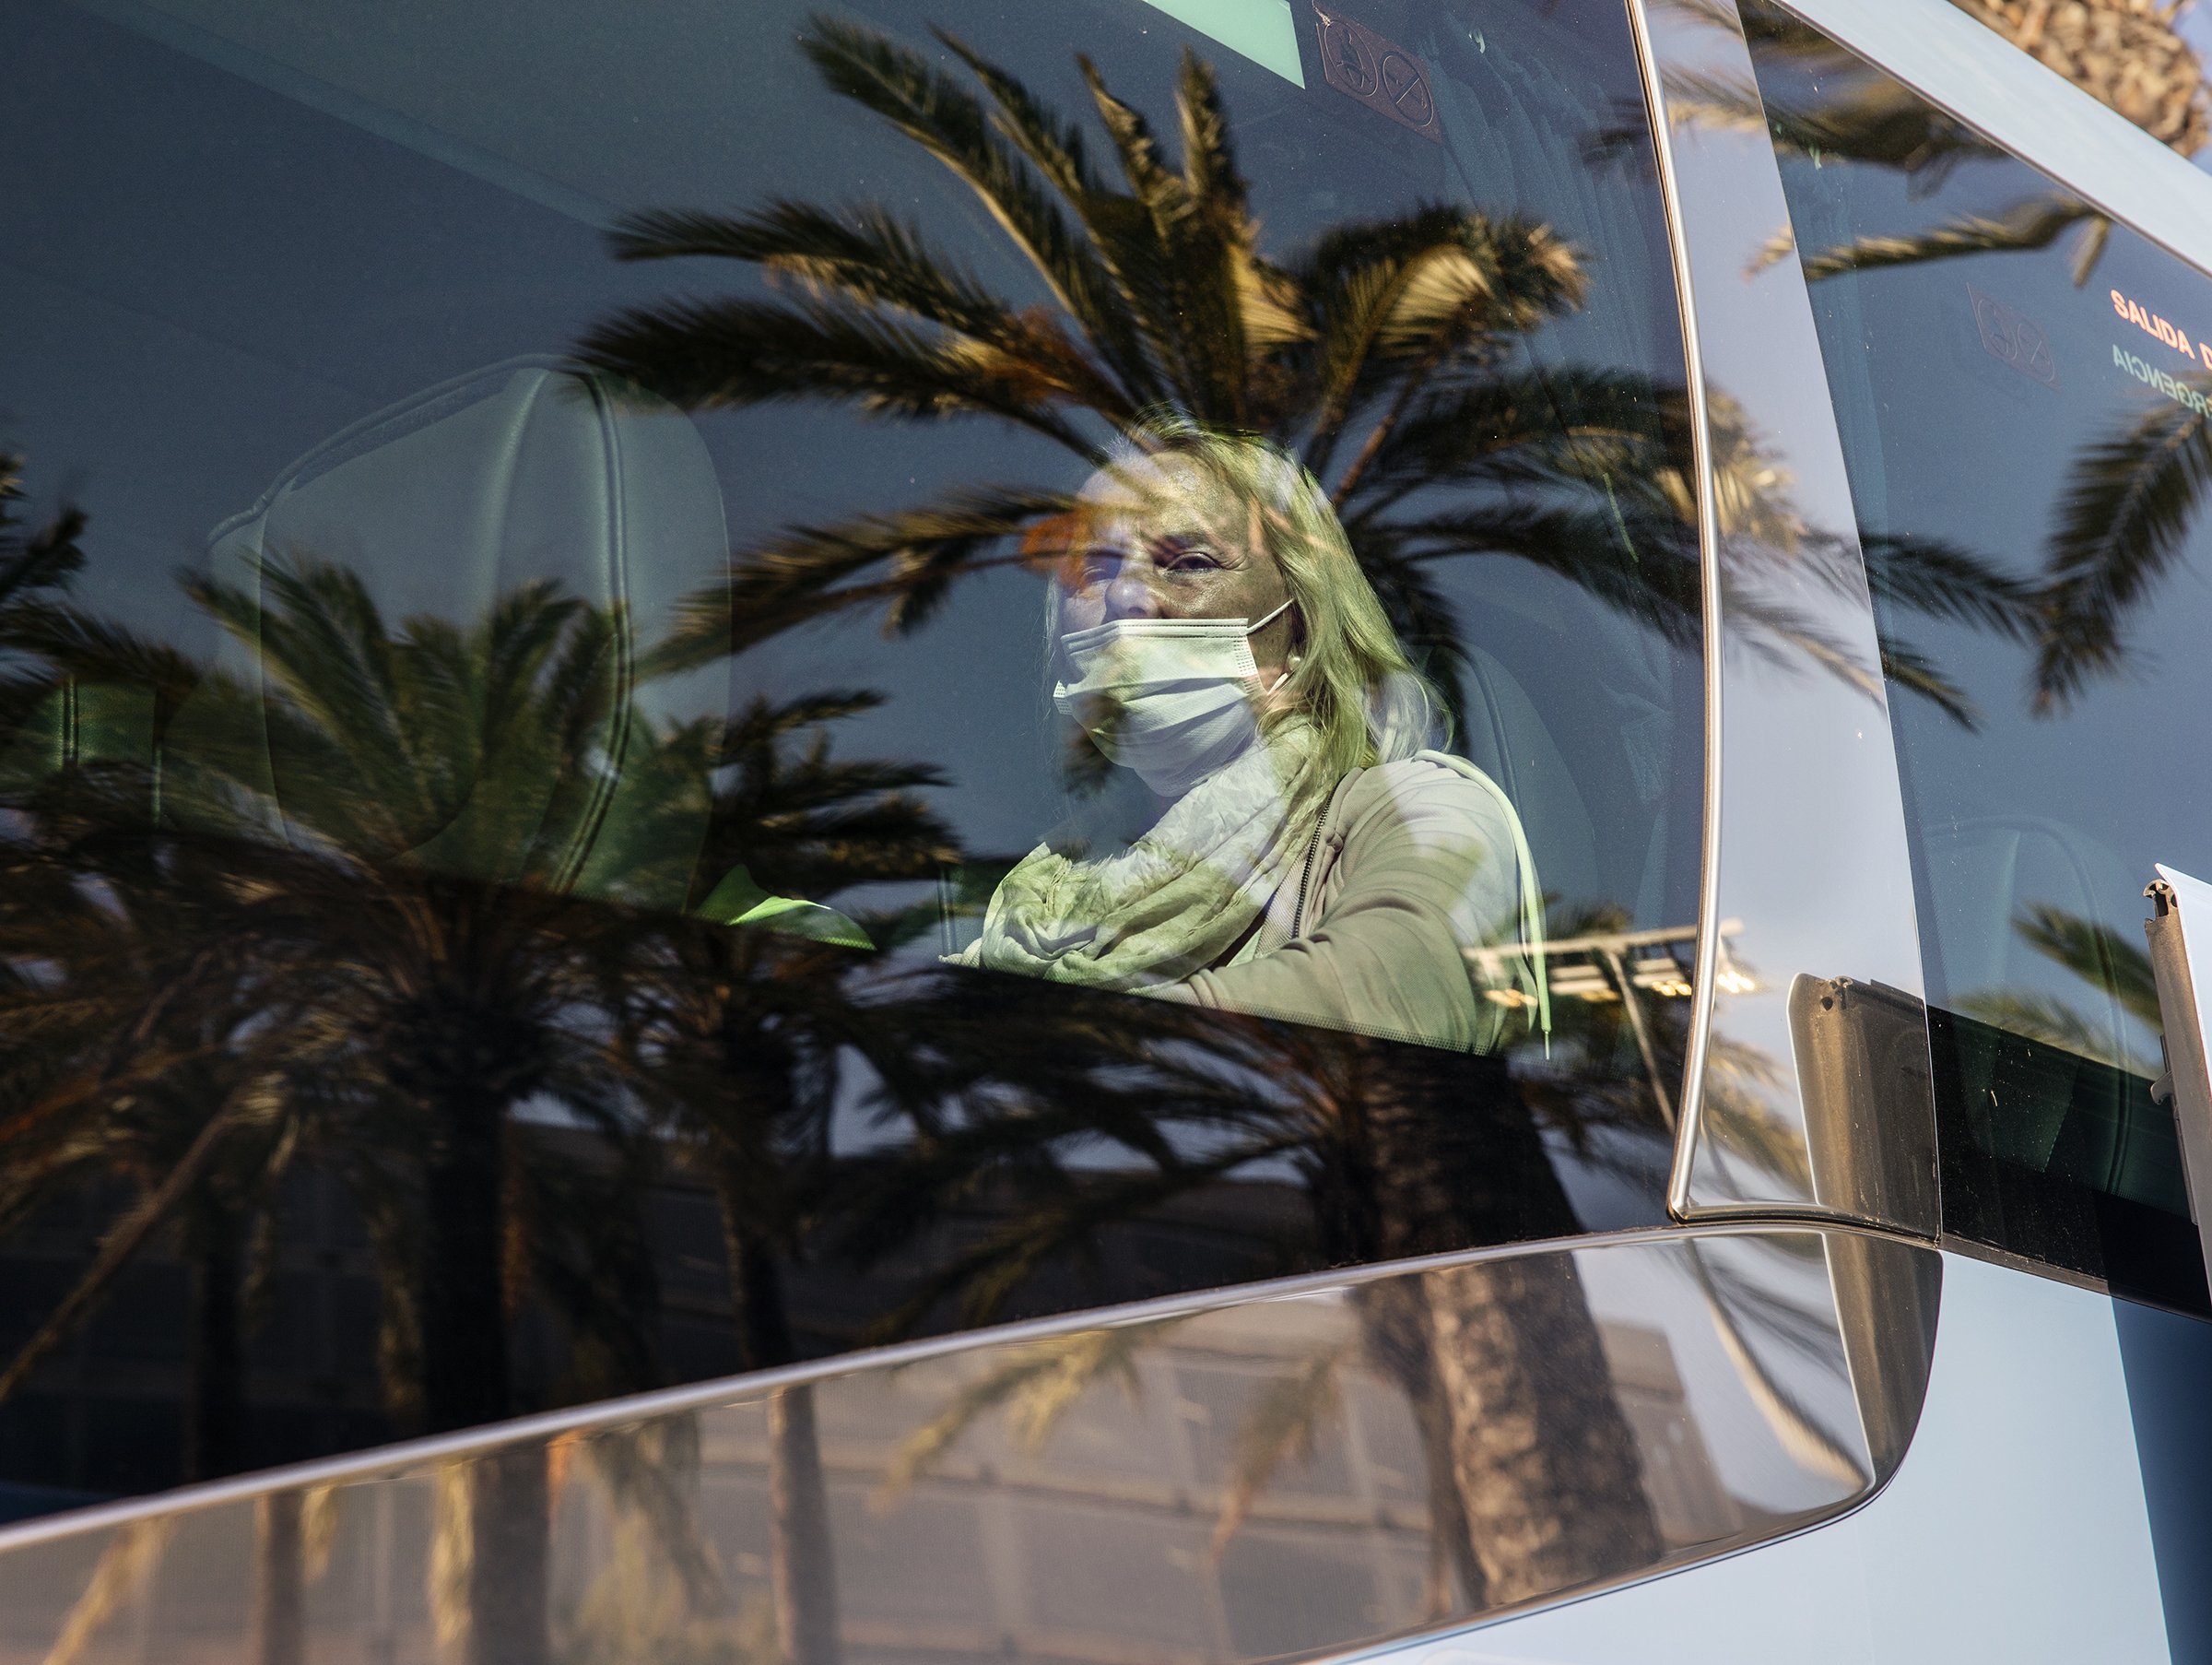 A tourist arriving from Germany onboard the TUI operator bus at Palma de Mallorca airport on June 15, 2020.